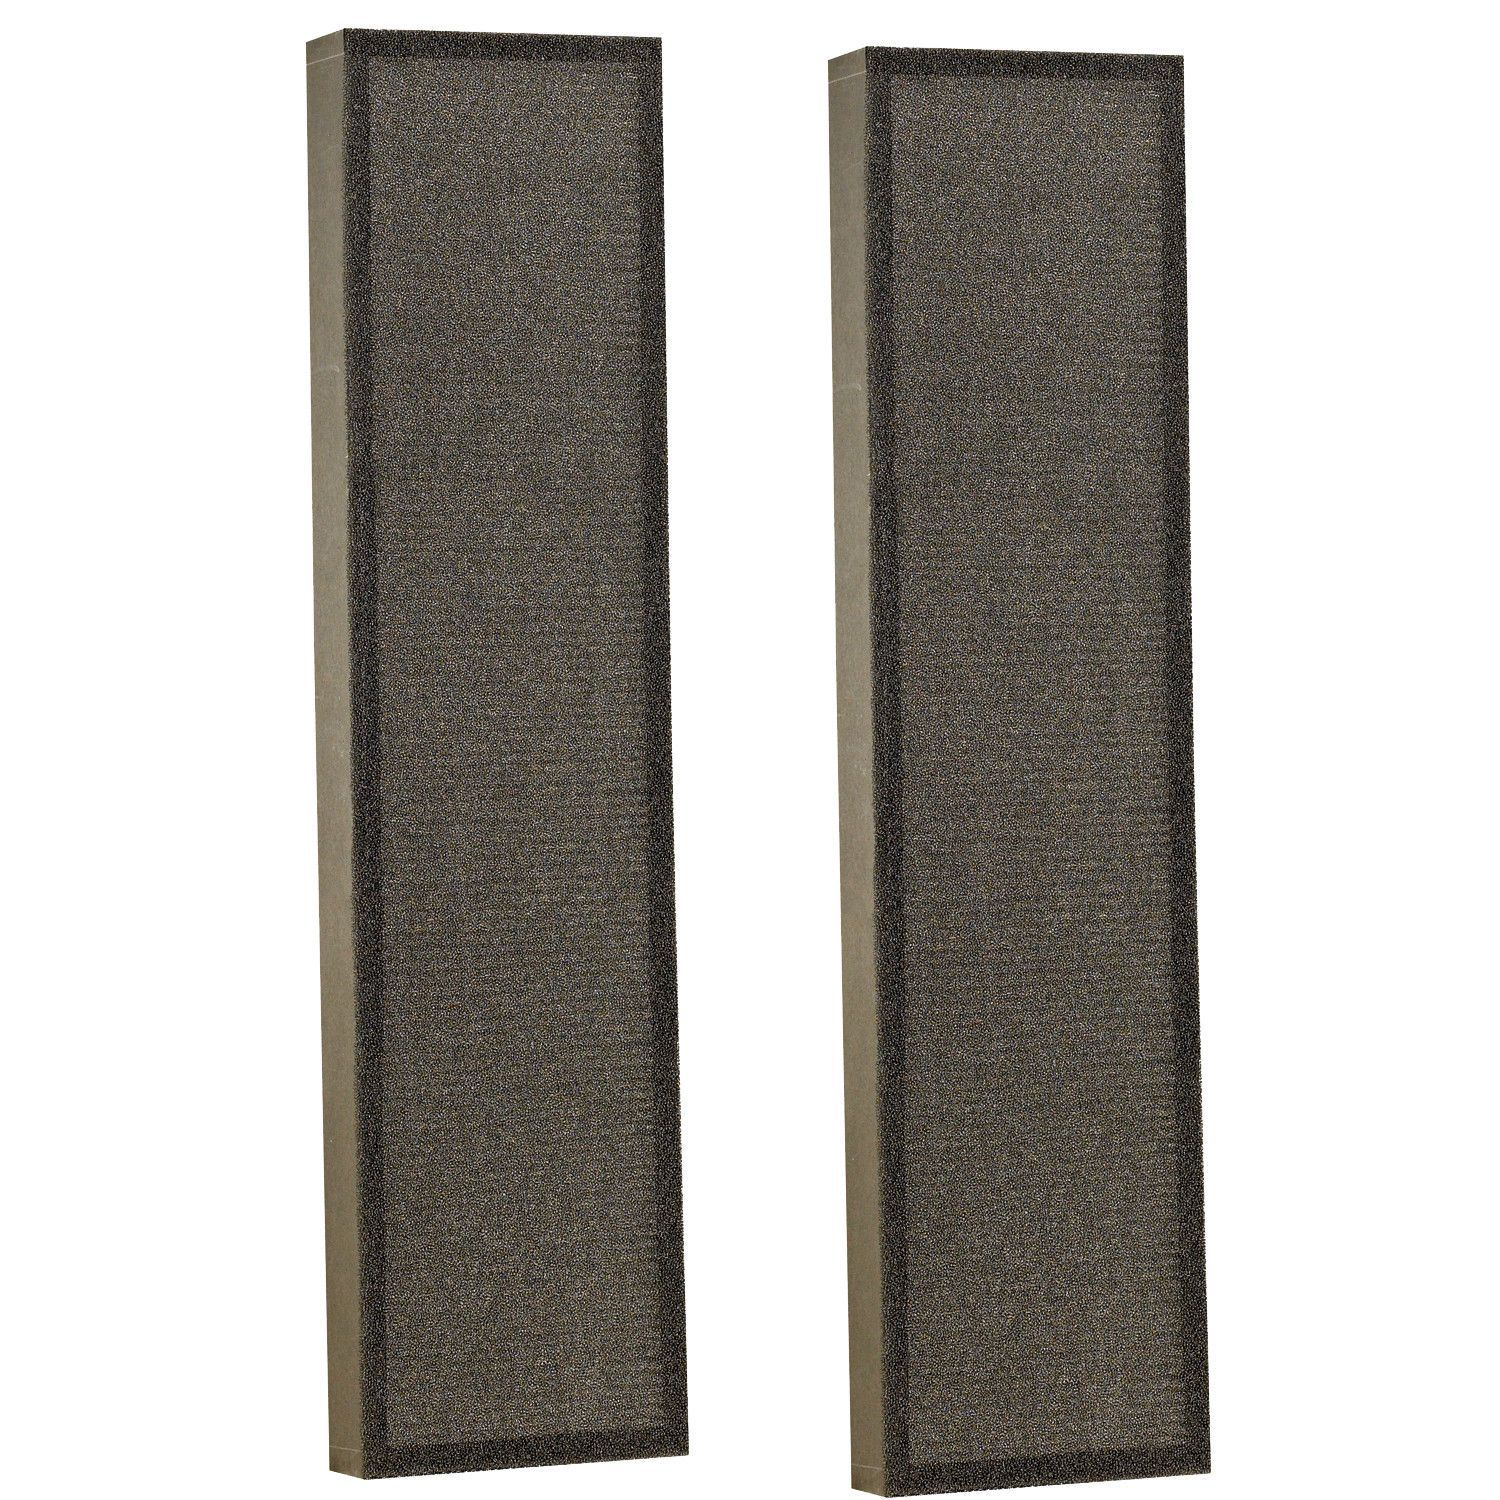 GermGuardian True HEPA FILTER C Replacement Filter 2pack